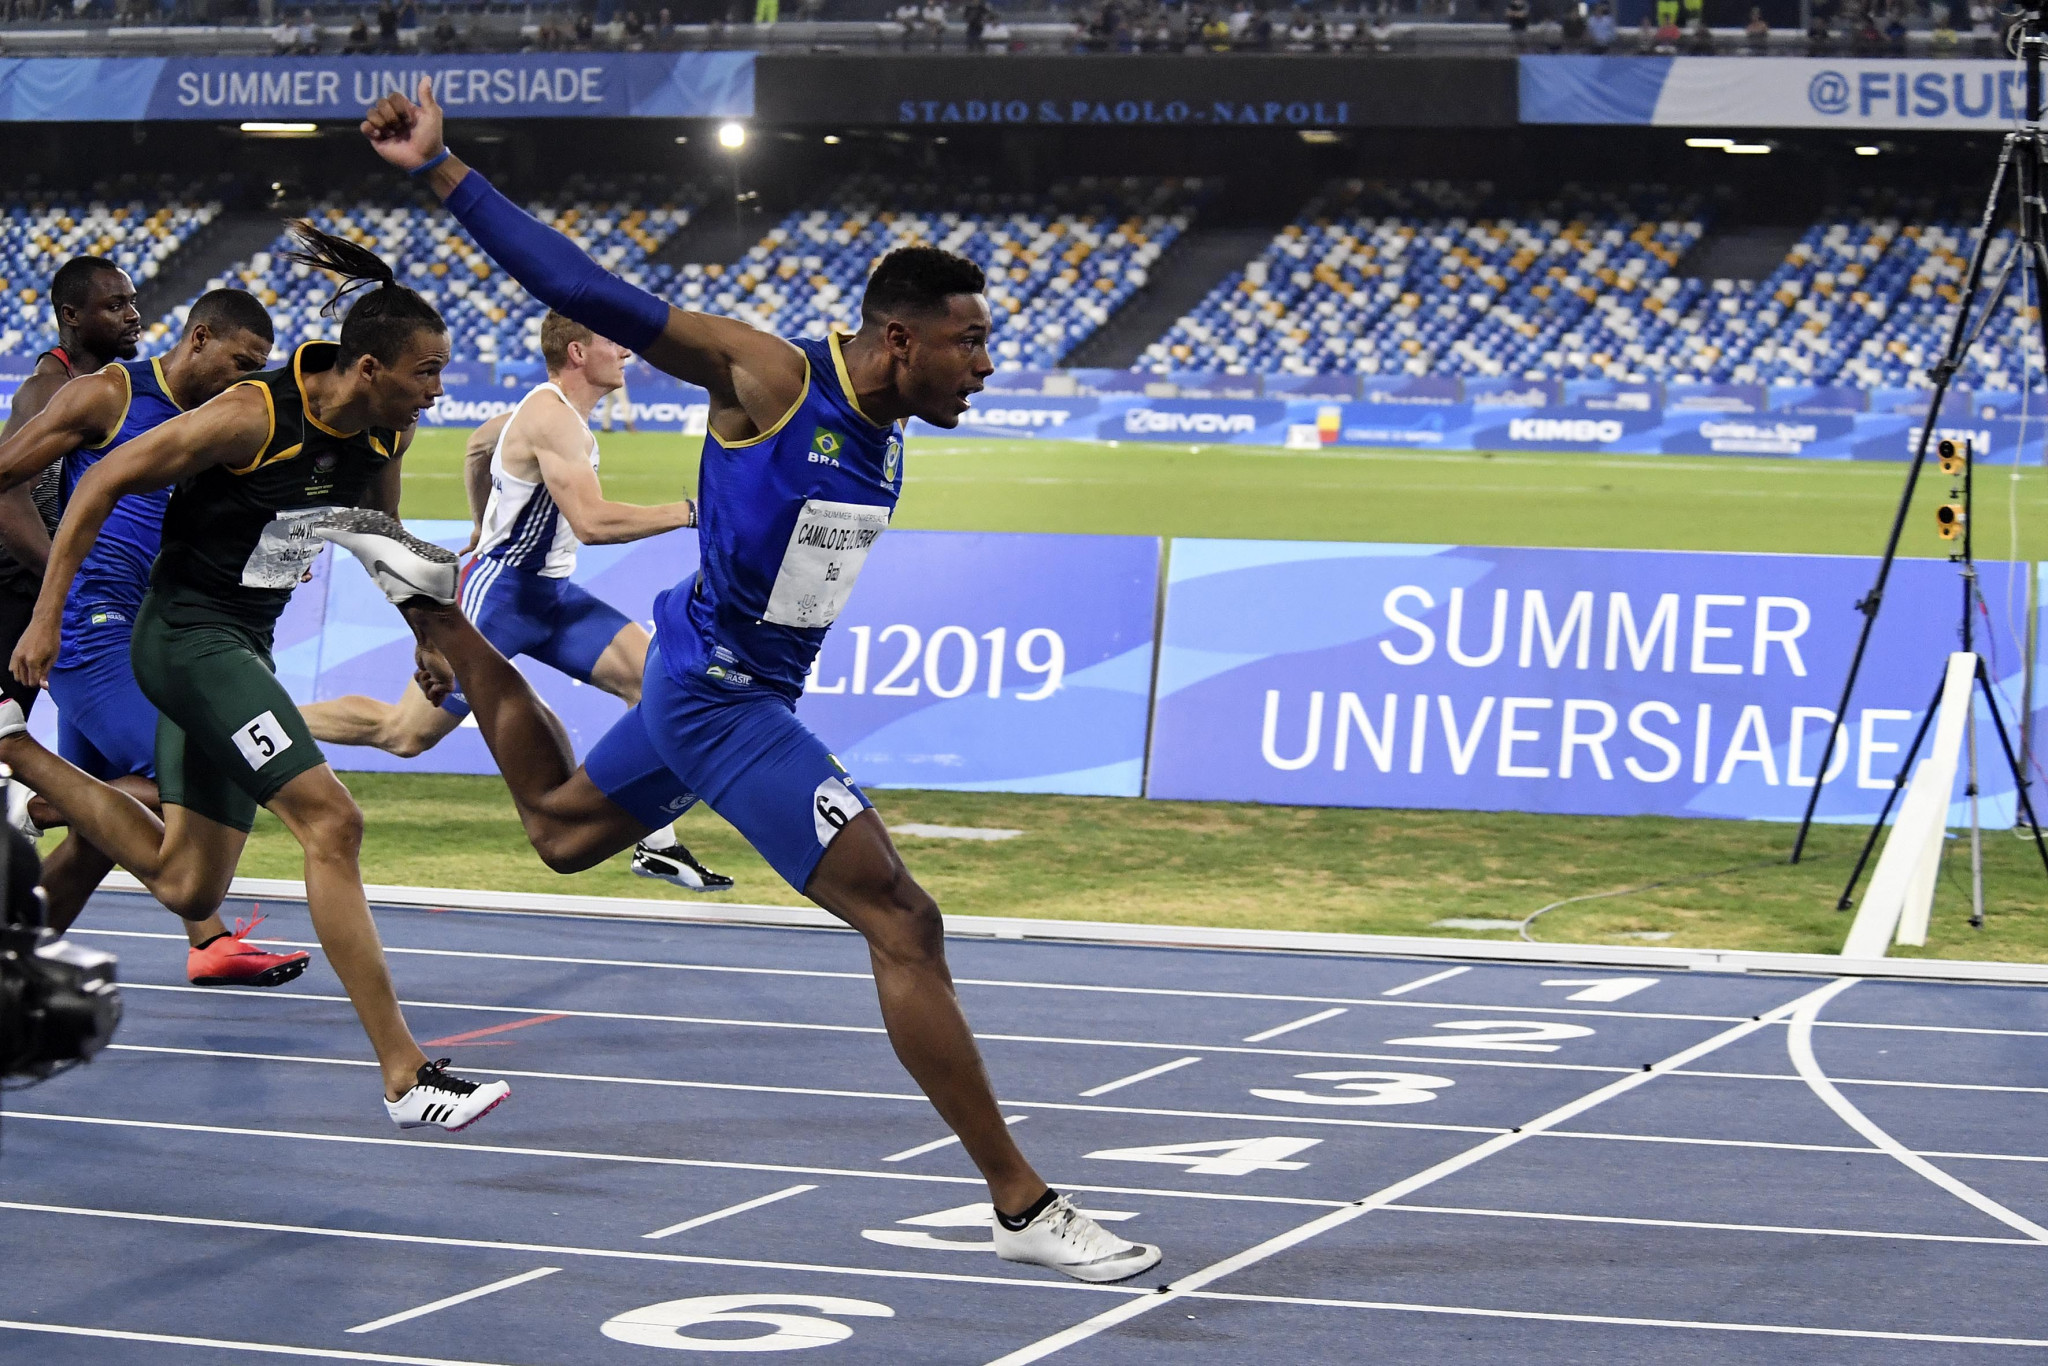 Paulo Andre Camilo won the men's 100m as Brazilians filled two of the top three places ©Naples 2019